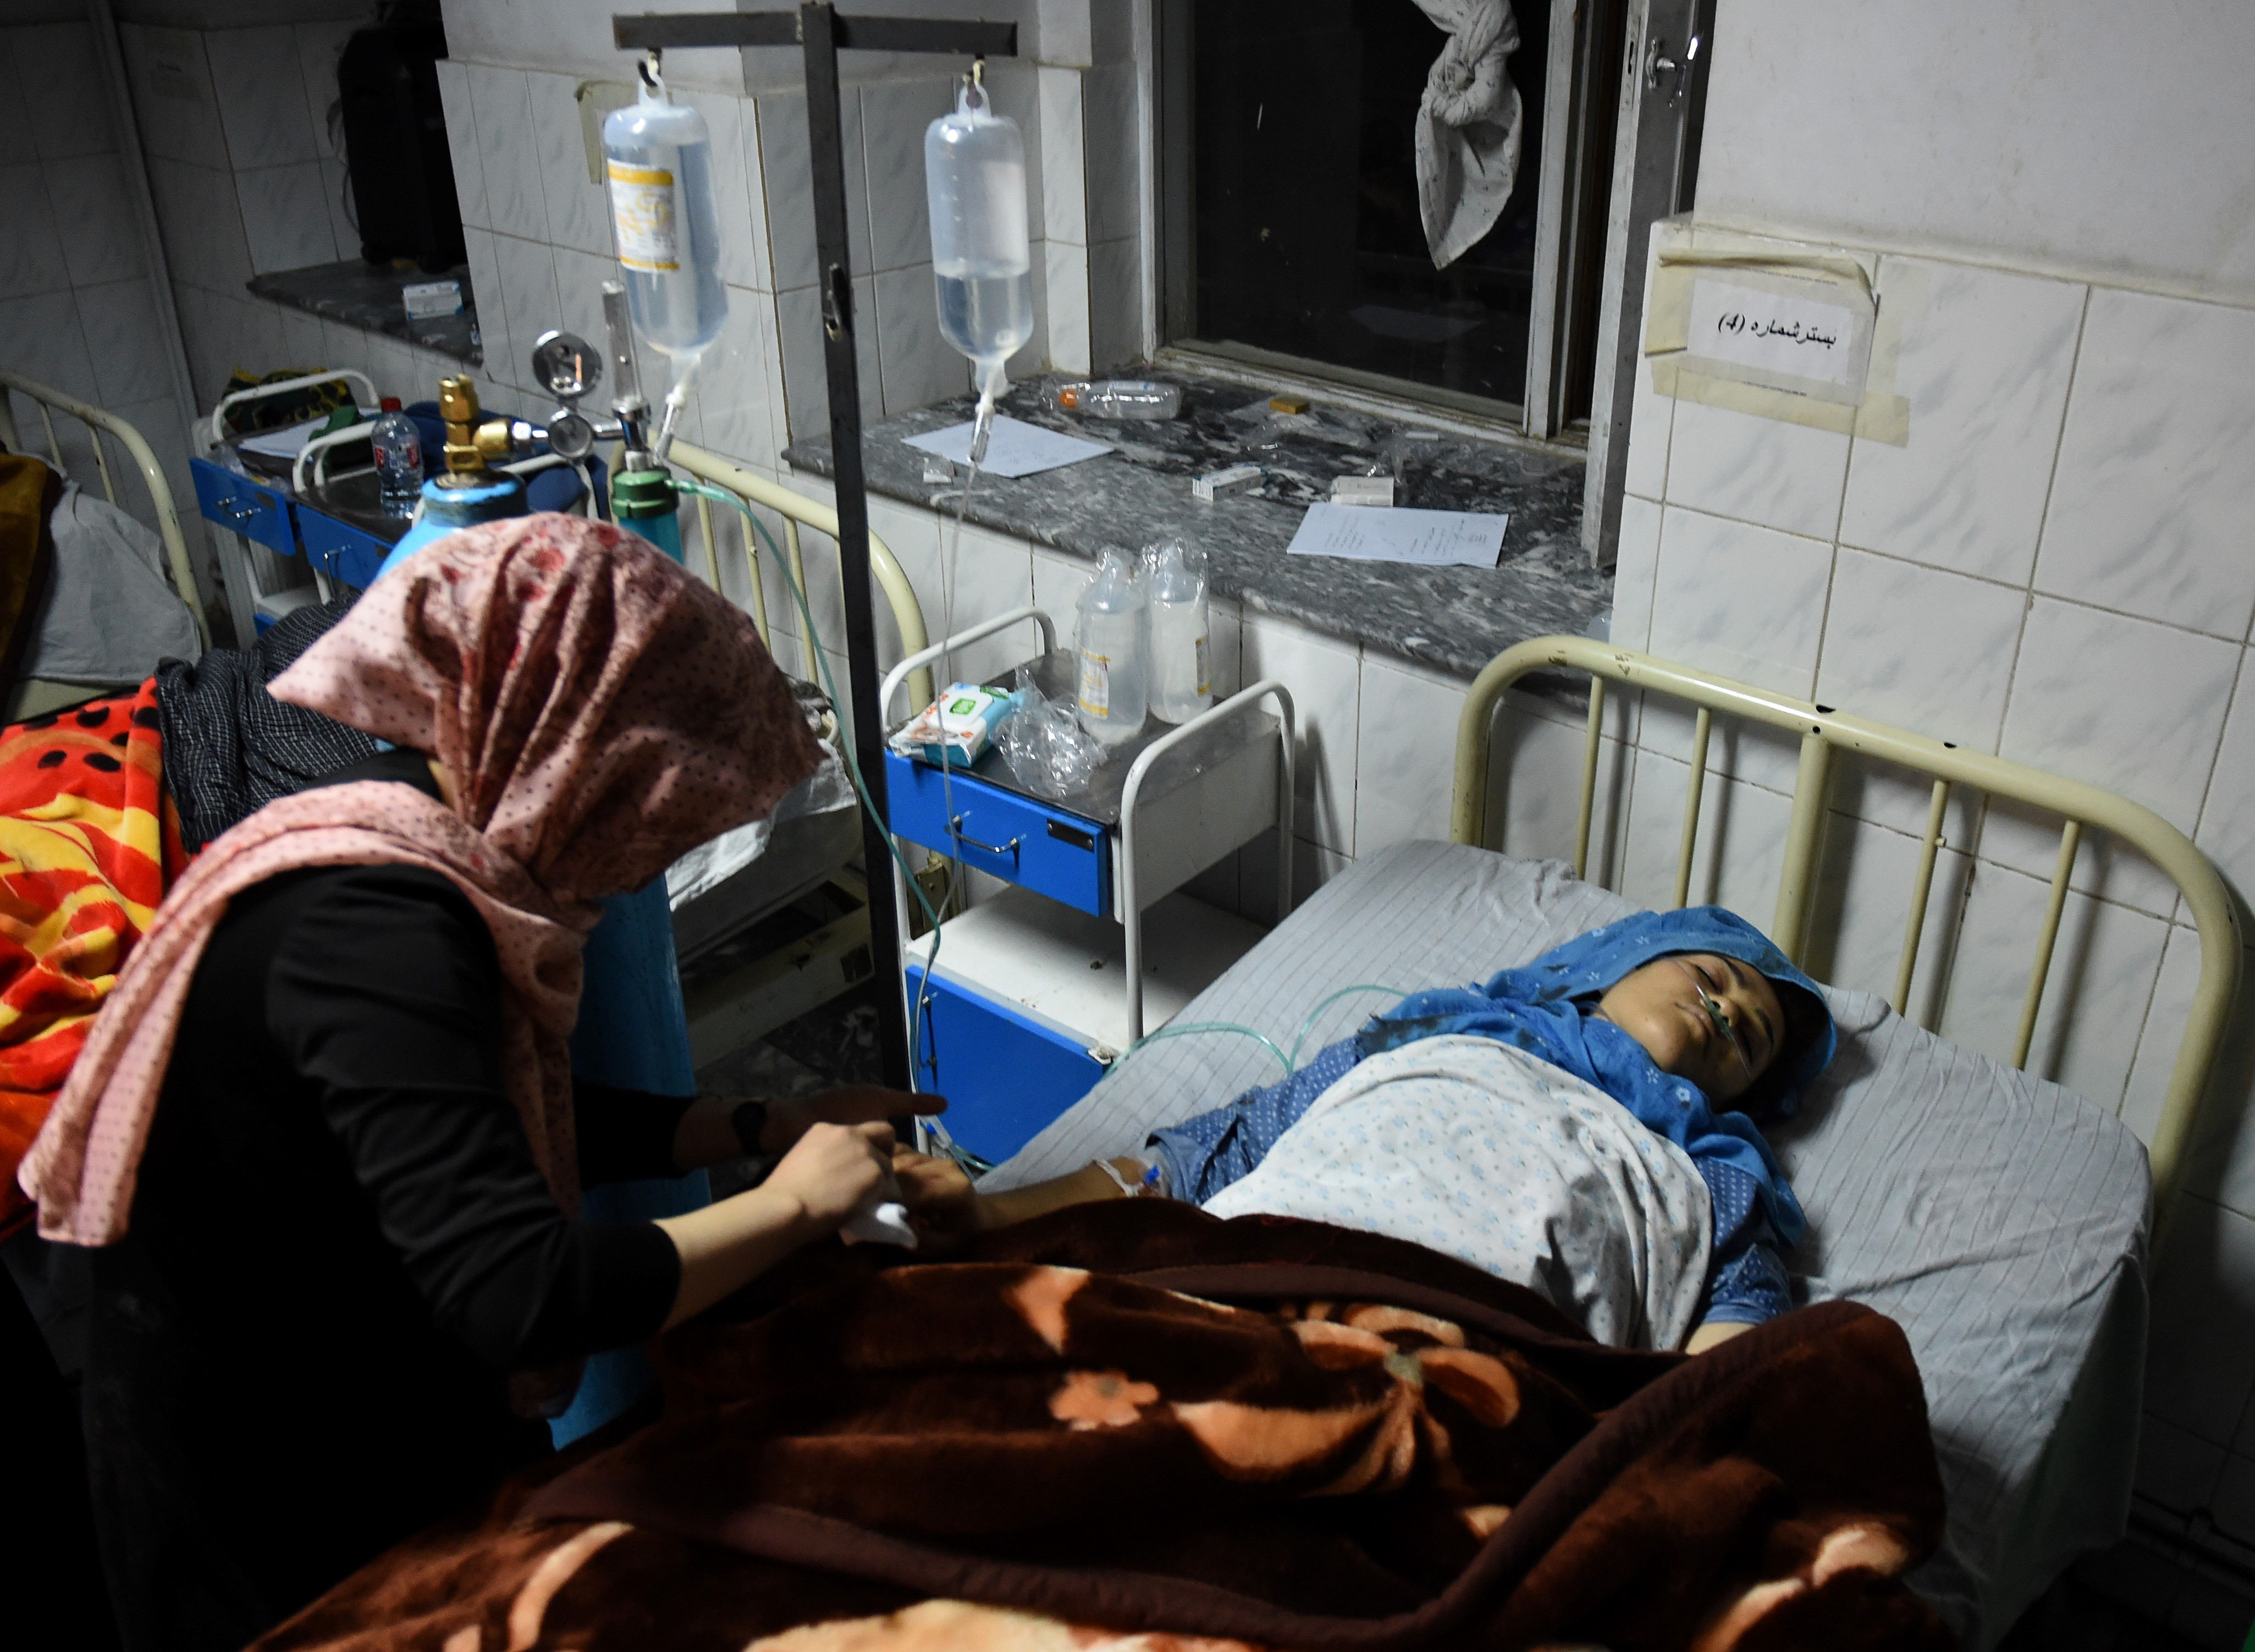 TOPSHOT - An Afghan wounded girl receives treatment at the Ali Abad hospital after an attack by gunmen inside the Kart-e- Sakhi shrine in Kabul on October 11, 2016. Gunmen targeted Shiite pilgrims in Kabul late Tuesday, killing at least 14 people as they gathered to celebrate Ashura, one of the most important festivals on the Shiite calendar, officials said.The attack in the Afghan capital marked unravelling security as the resurgent Taliban continued to pressure Afghan forces, with hundreds of commandos sent to reinforce the provincial capital Lashkar Gah in the south.Some 36 people were wounded and at least one attacker killed in the Kabul attack, interior ministry spokesman Sediq Sediqqi said. / AFP / WAKIL KOHSAR (Photo credit should read WAKIL KOHSAR/AFP/Getty Images)